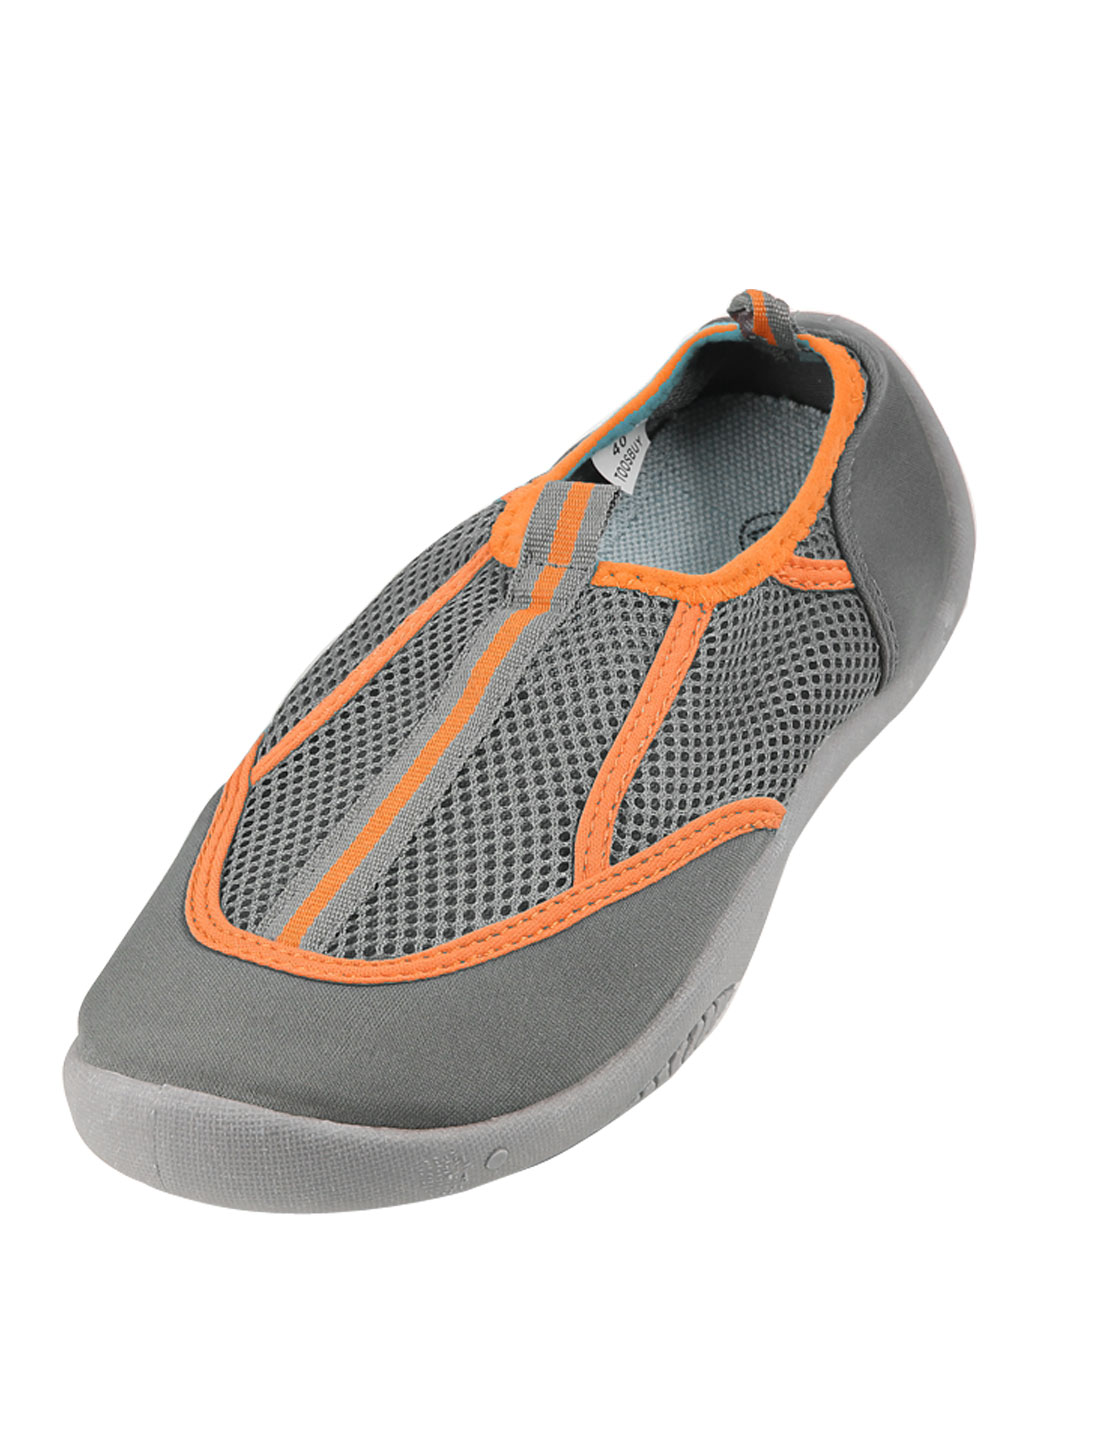 Gray Orange Round Toe Low Platform Flat Beach Mesh Shoes US 10 for Women